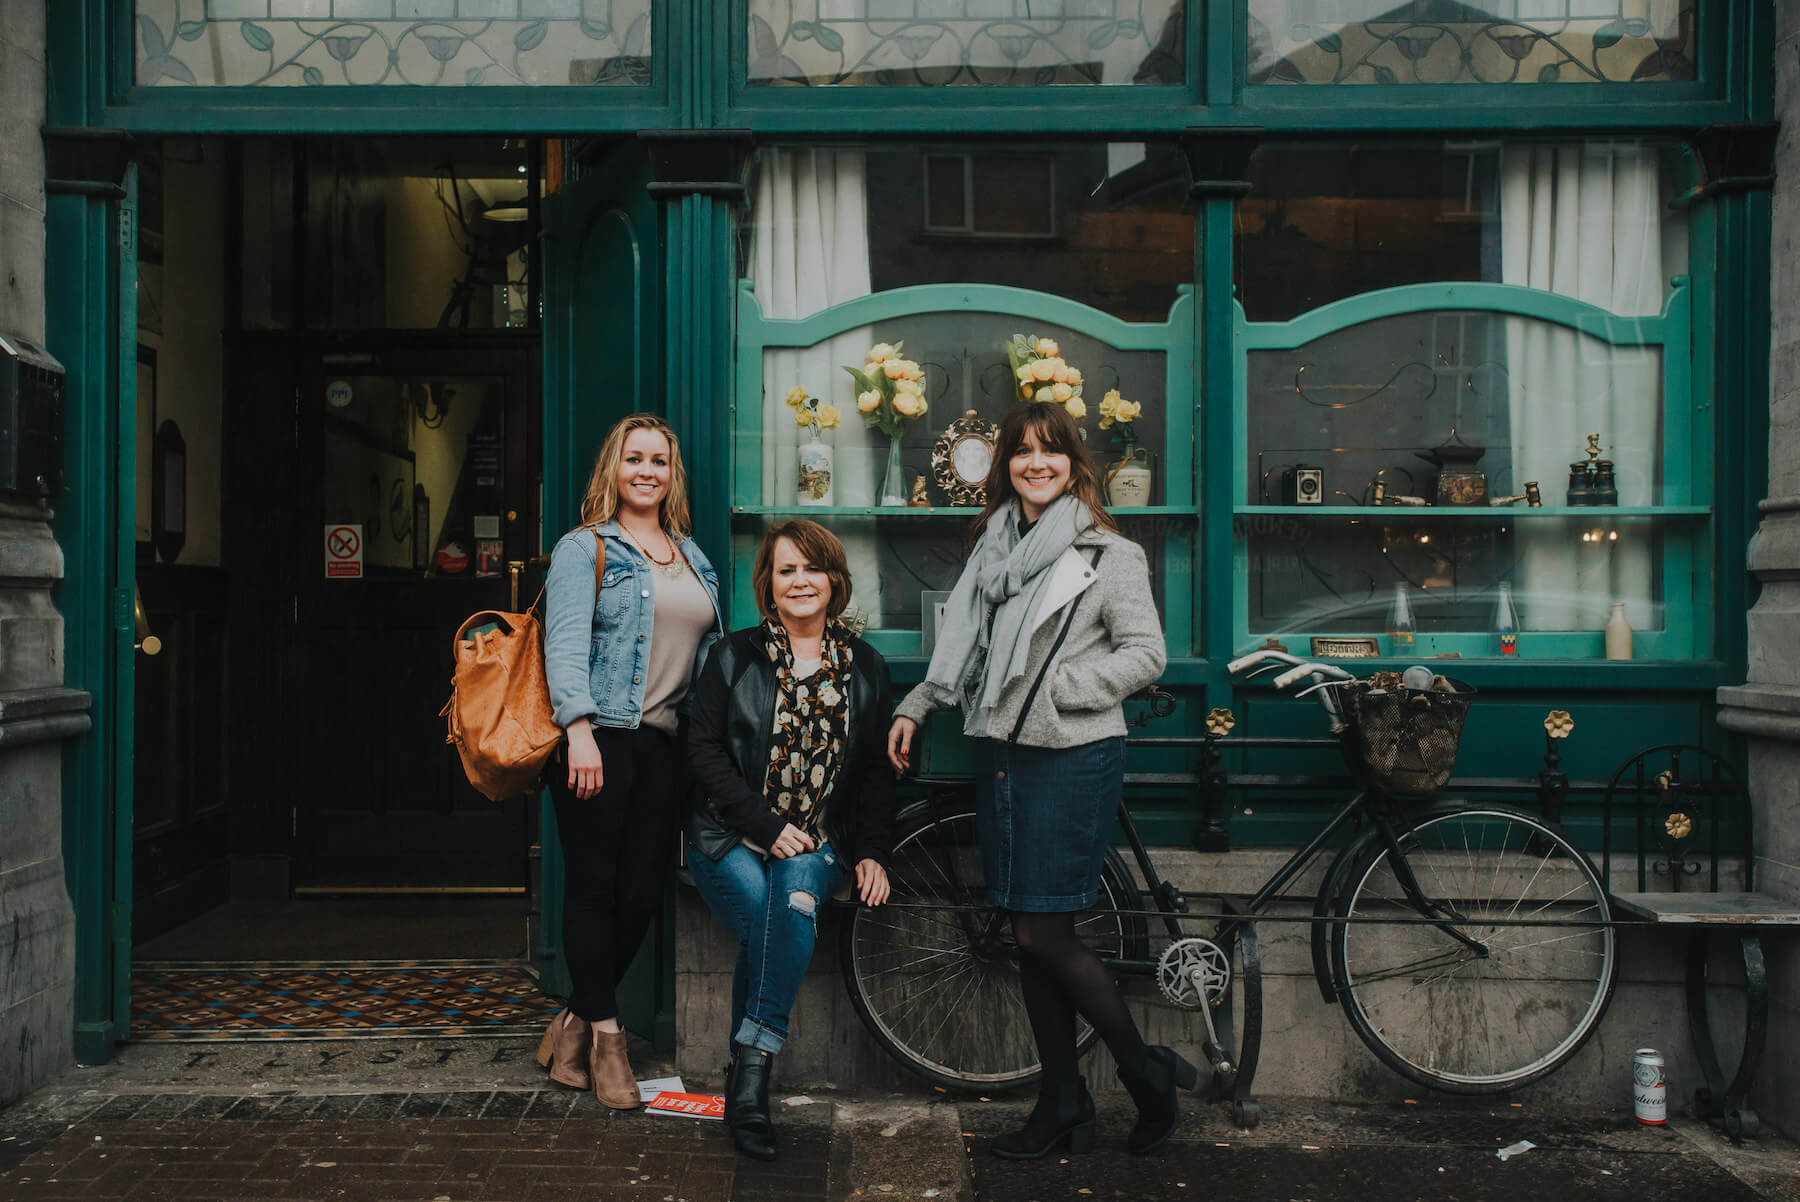 Mother daughters in Dublin, Ireland